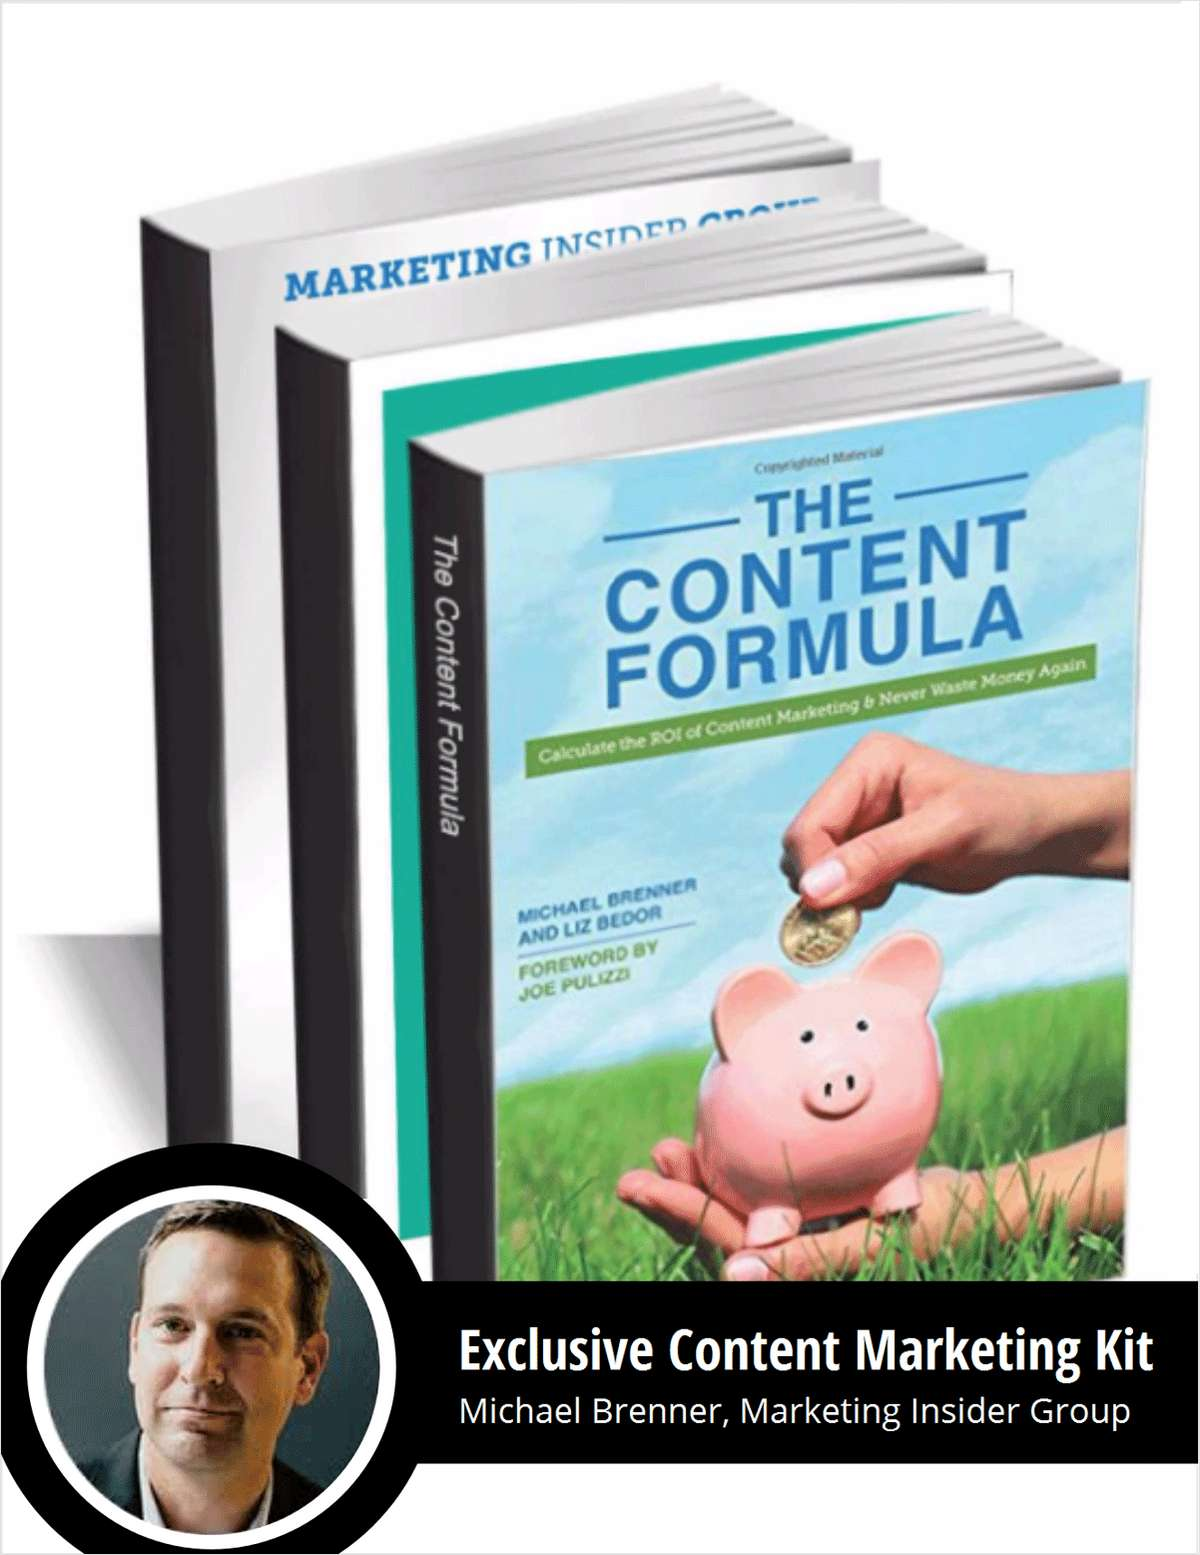 Michael Brenner's Exclusive Content Marketing Kit